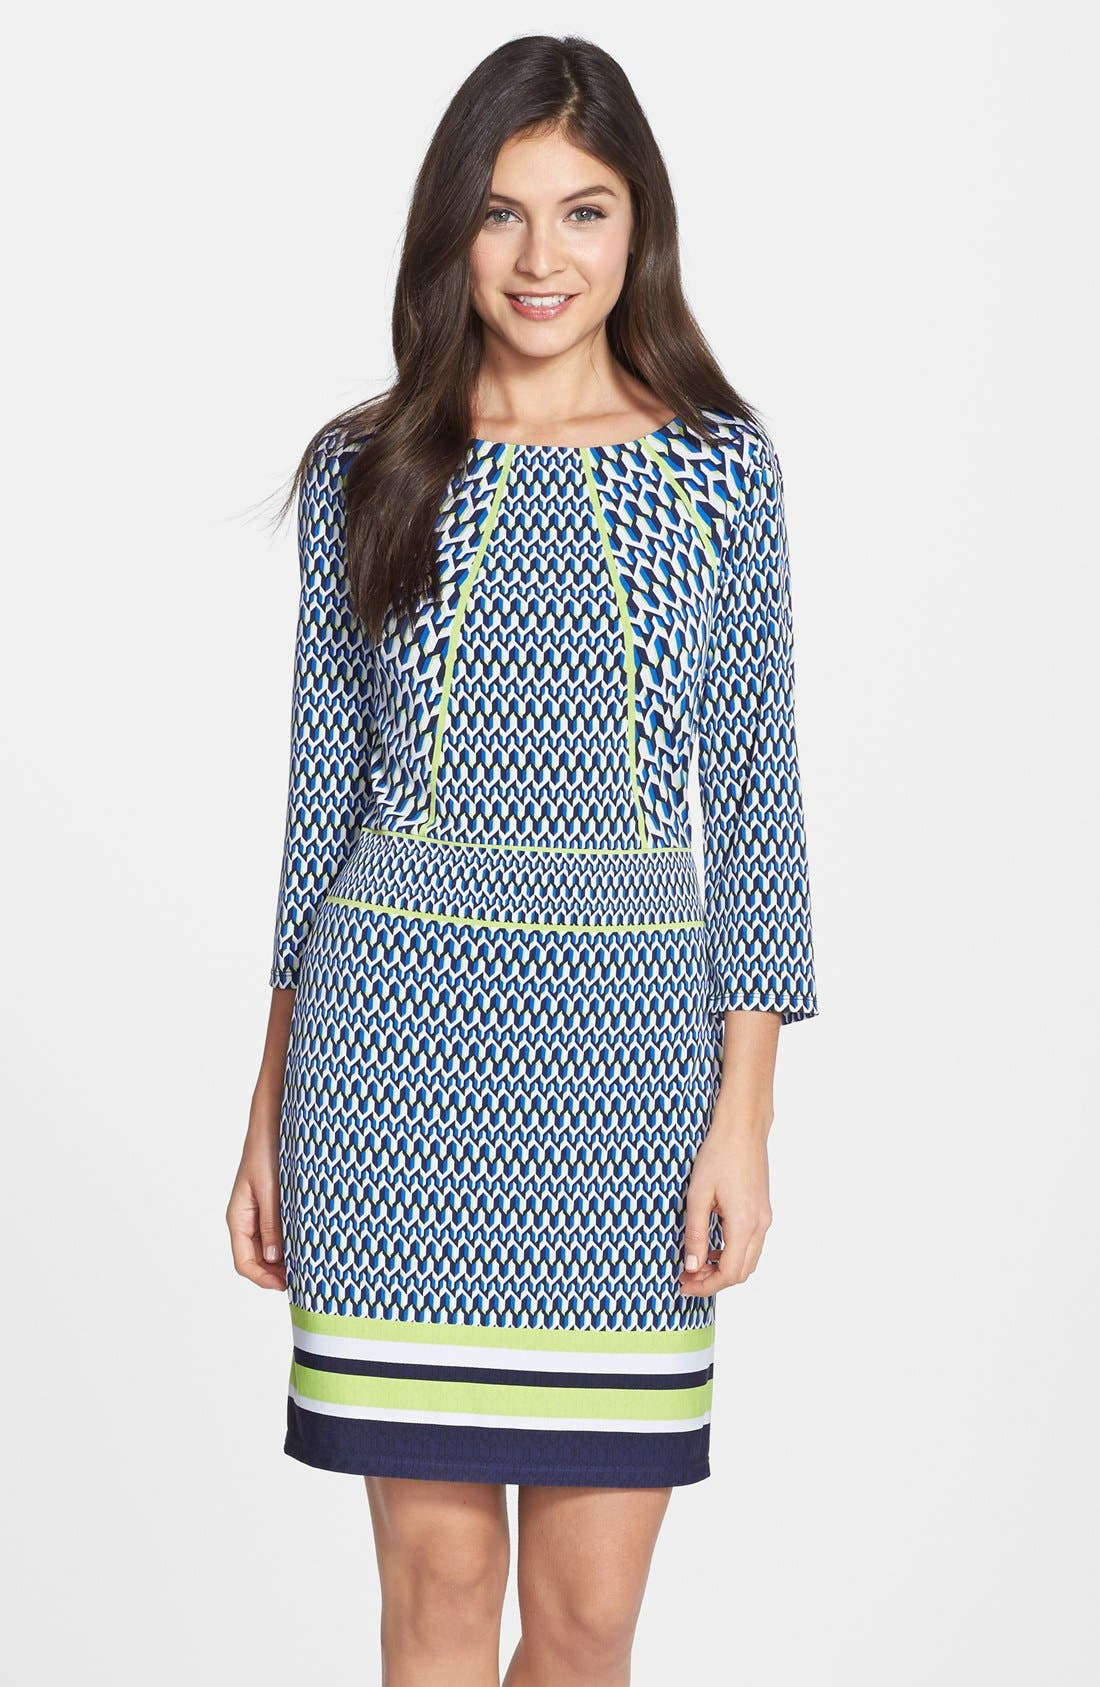 Main Image - Laundry by Shelli Segal Print Jersey Sheath Dress (Regular & Petite)